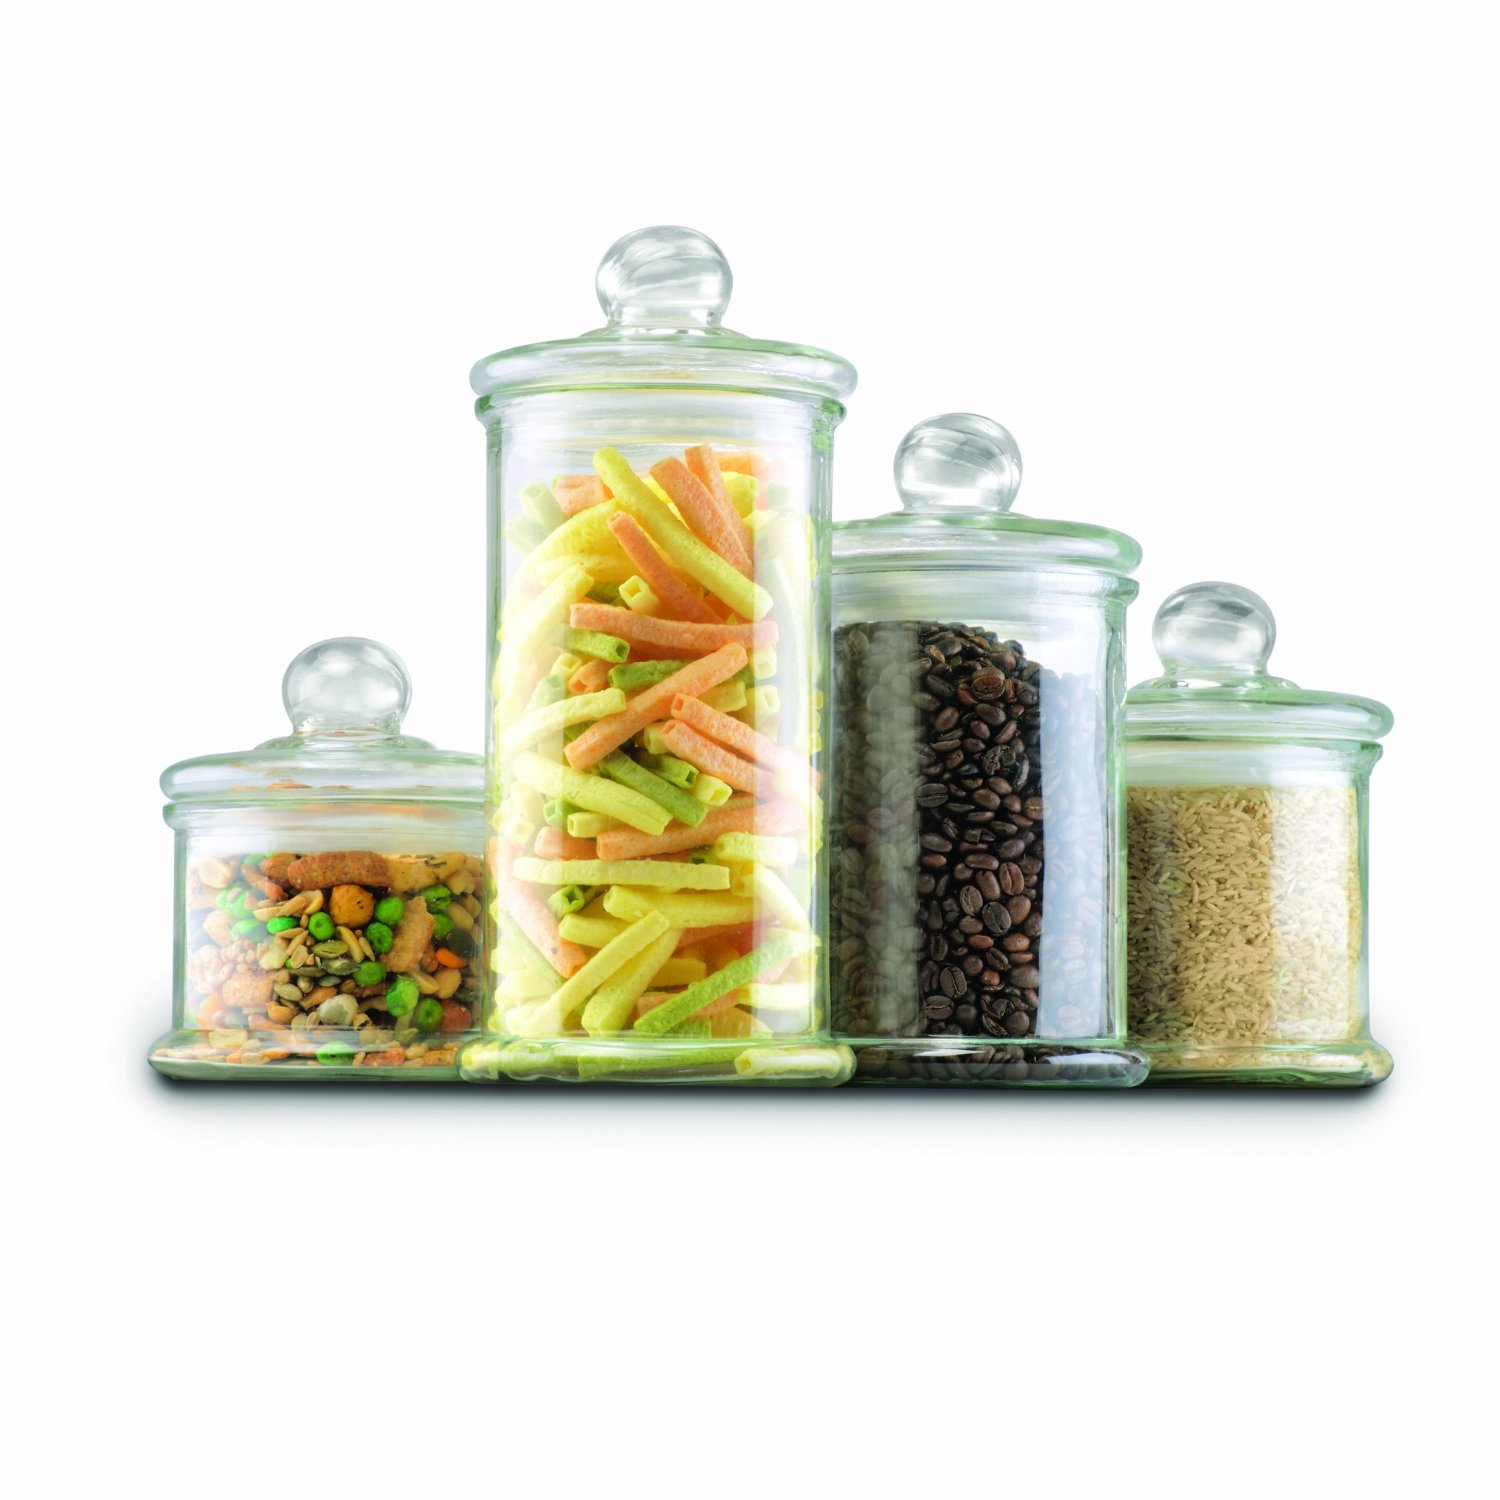 4 piece glass canister set 28 94 crystalandcomp com glass kitchen canister sets 187 new home design